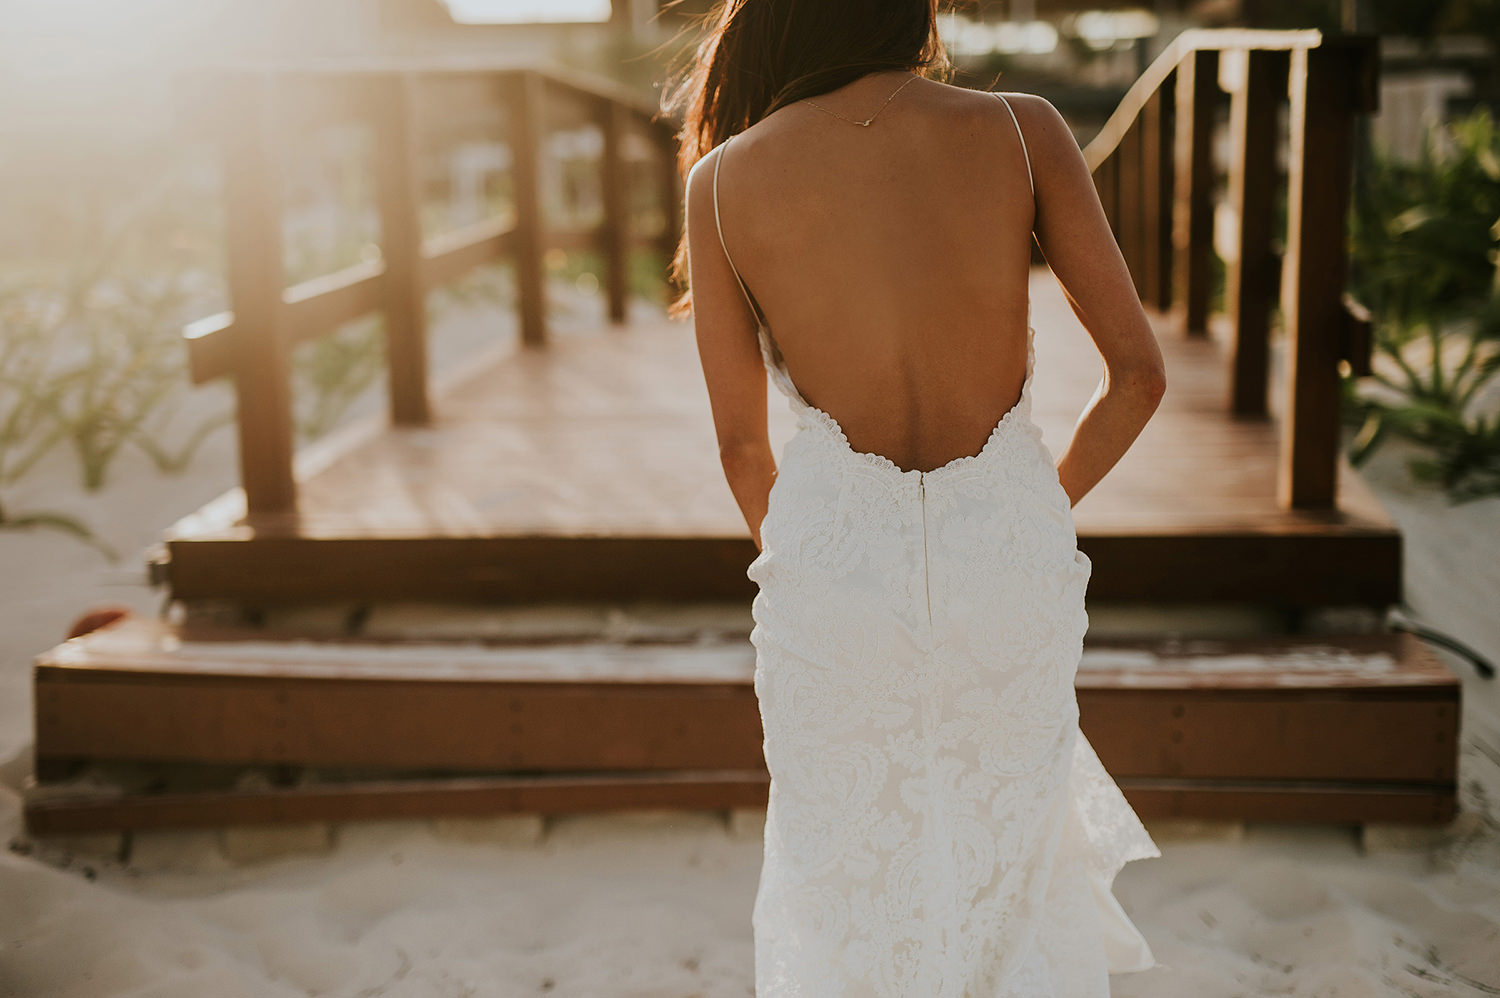 CherylReed_Wedding_Kape_Photography_WeddingPhotography_Mexico_Boda_Fotografia_Royalton_Hideway_Cancun_RivieraMaya_PlayadelCarmen_Beach_1066FB_BLOG.jpg